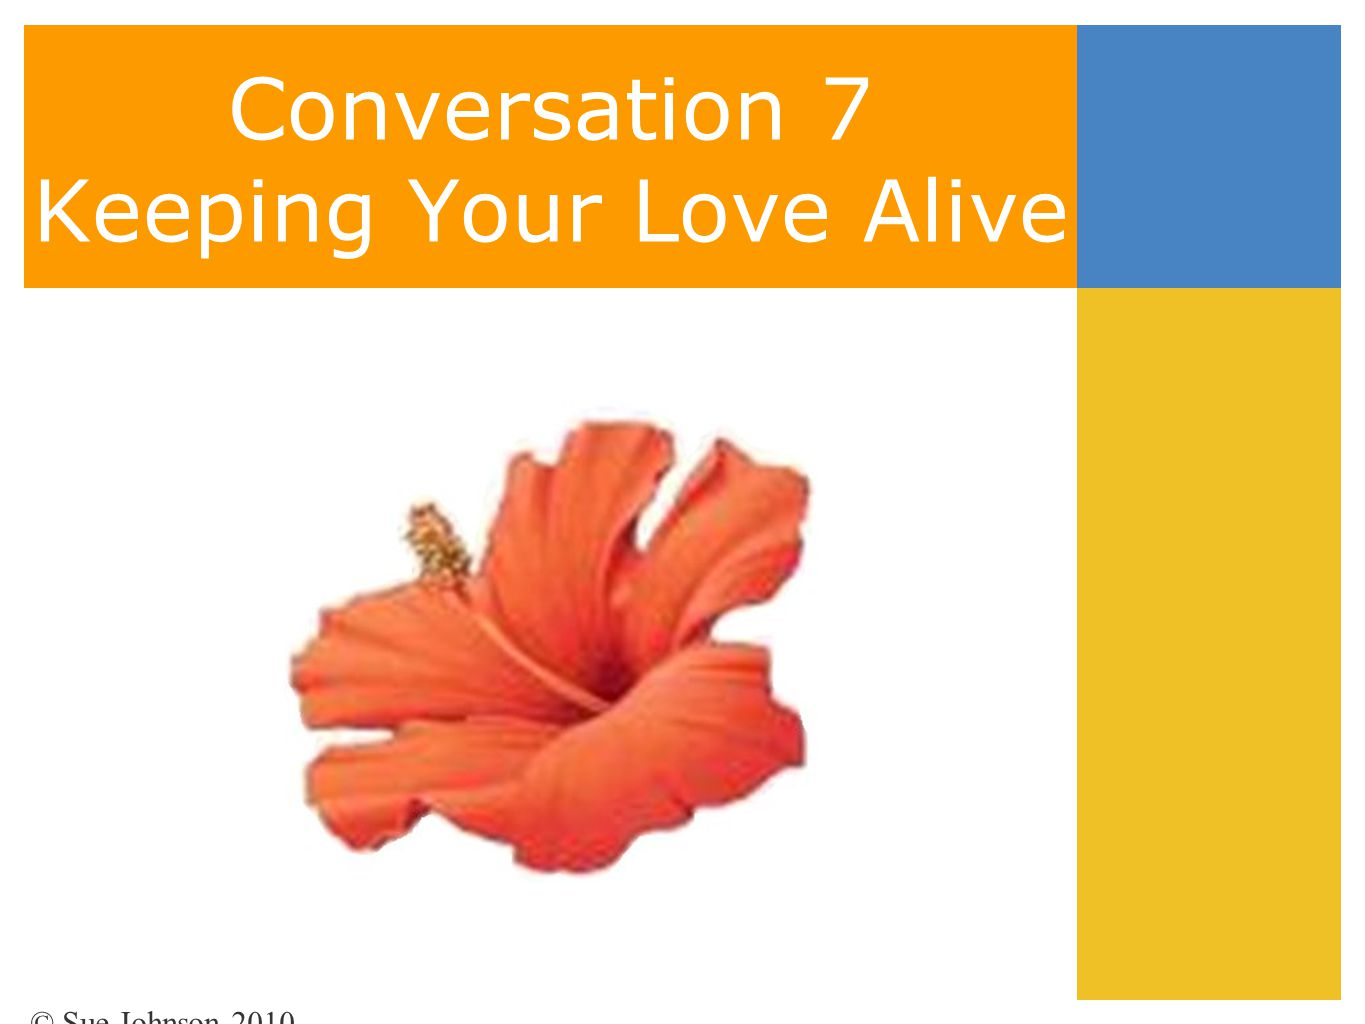 Conversation 7 Keeping Your Love Alive